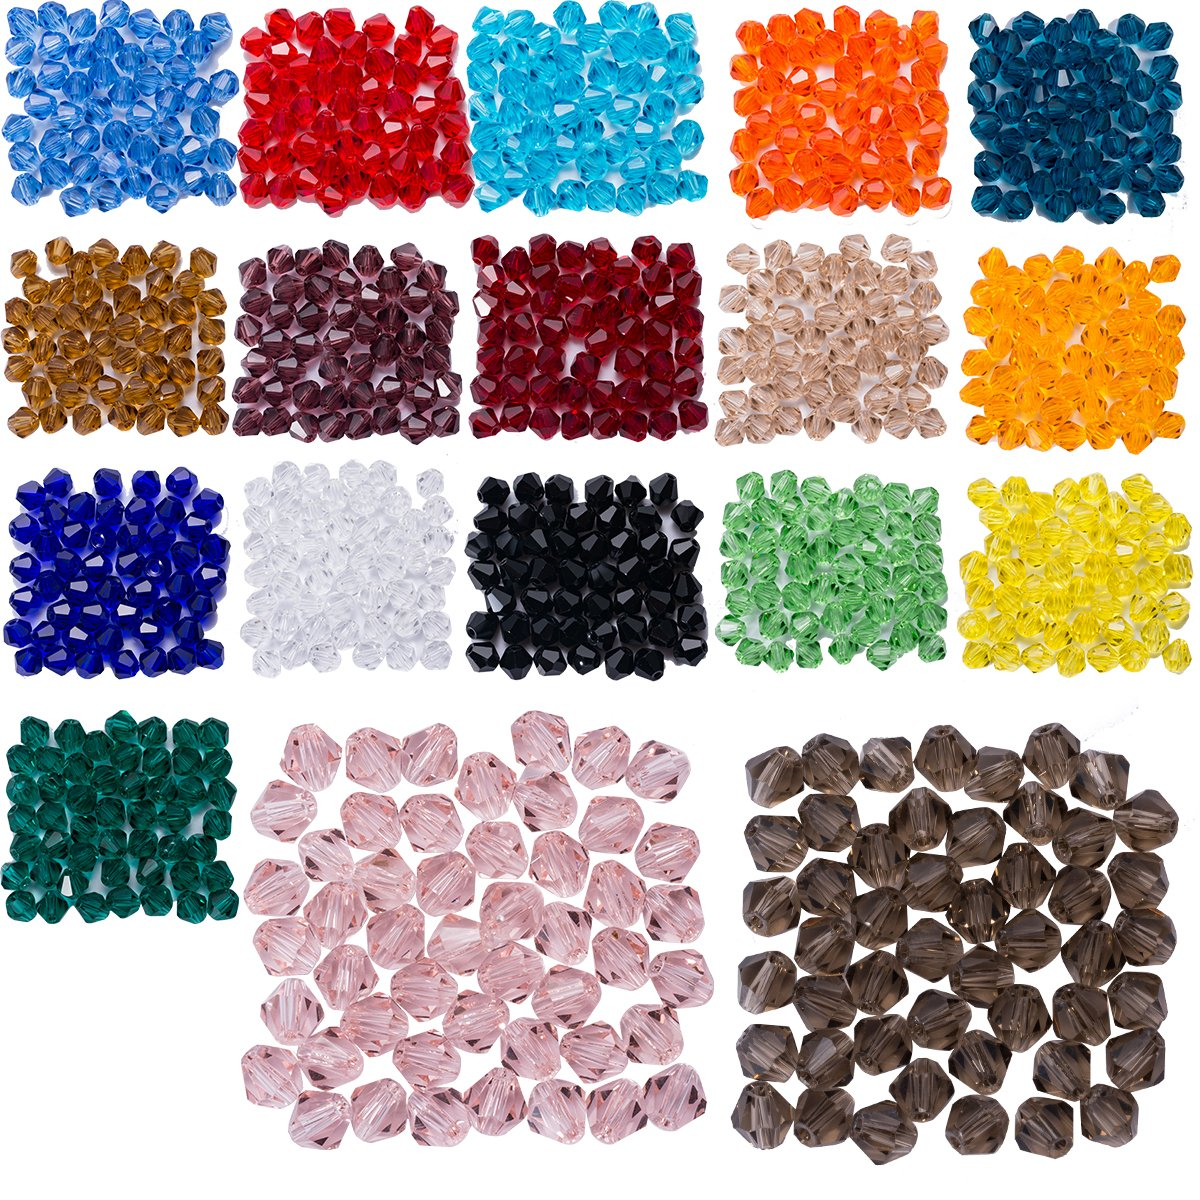 Lot 900pcs Glass Bicone Beads - LONGWIN Wholesale 6mm Bicone Shaped Crystal Faceted Beads Jewelry Making Supply for DIY Beading Projects, Bracelets, Necklaces, Earrings & Other Jewelries by LONGWIN